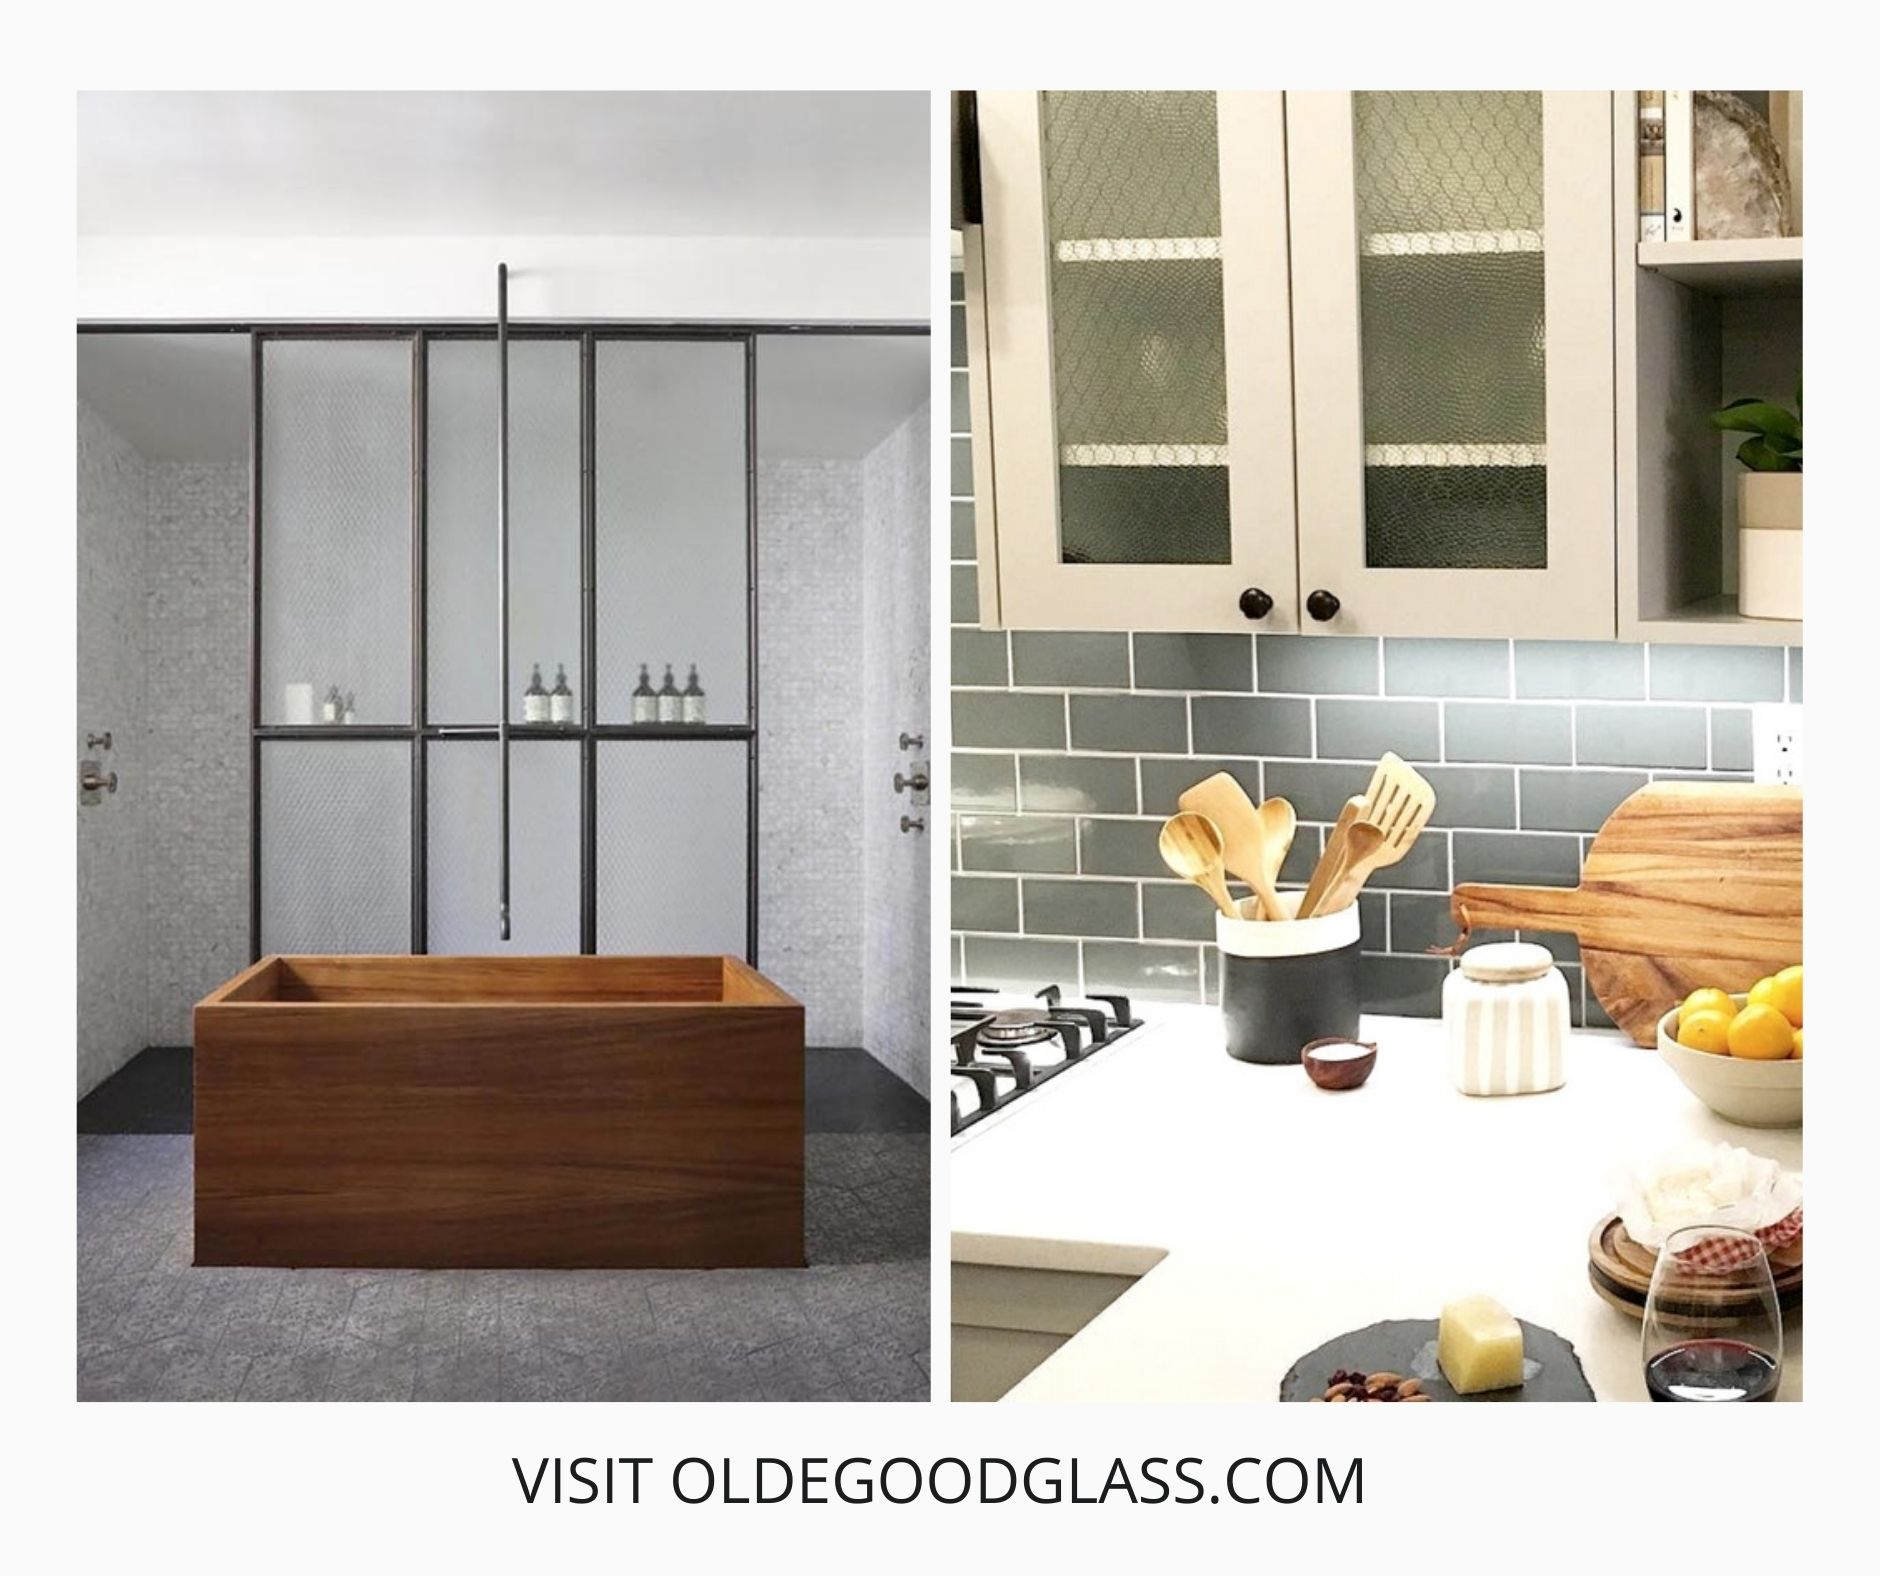 VINTAGE-GLASS-HOME-PAGE